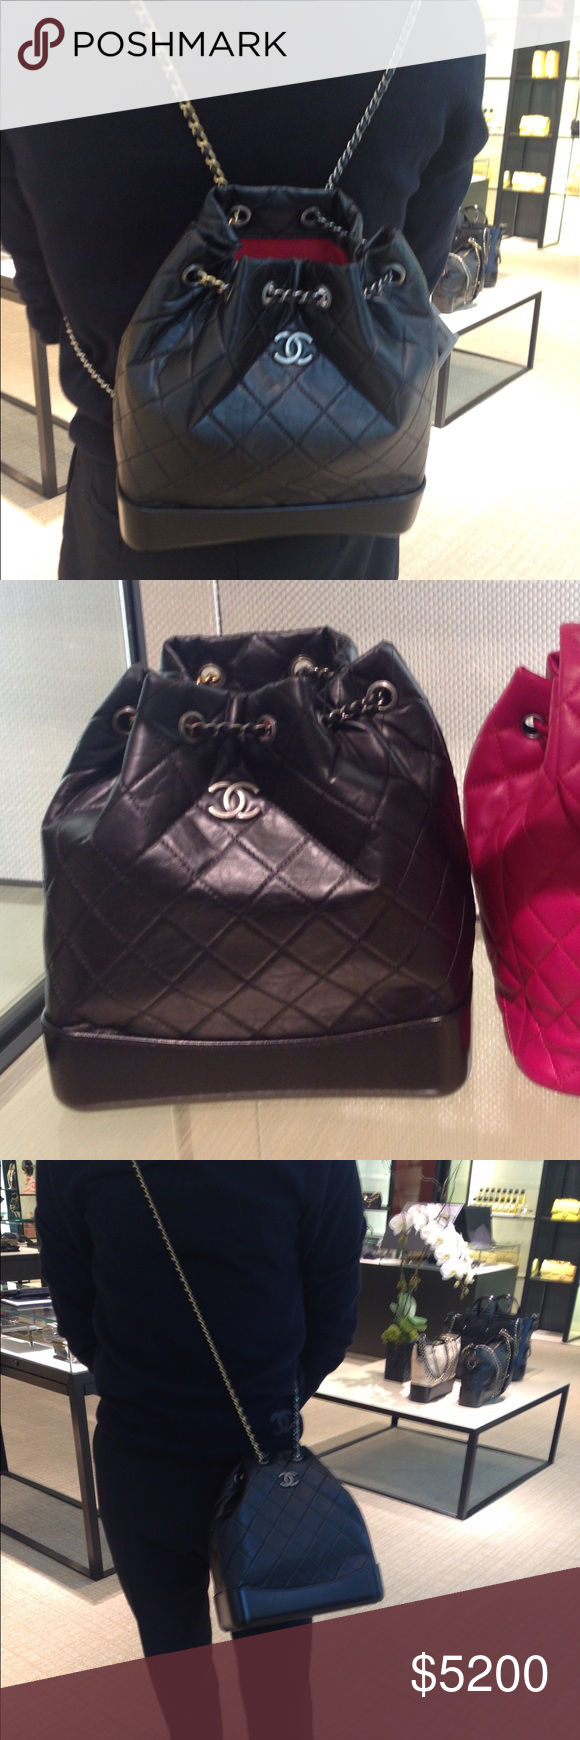 159d9e01e95e2d 100% Auth Chanel Gabrielle Backpack. Large Size Brand New Size Large!! Gabrielle  Backpack. Just arrived for Pre-Fall. Black , with multi colored hardwares.